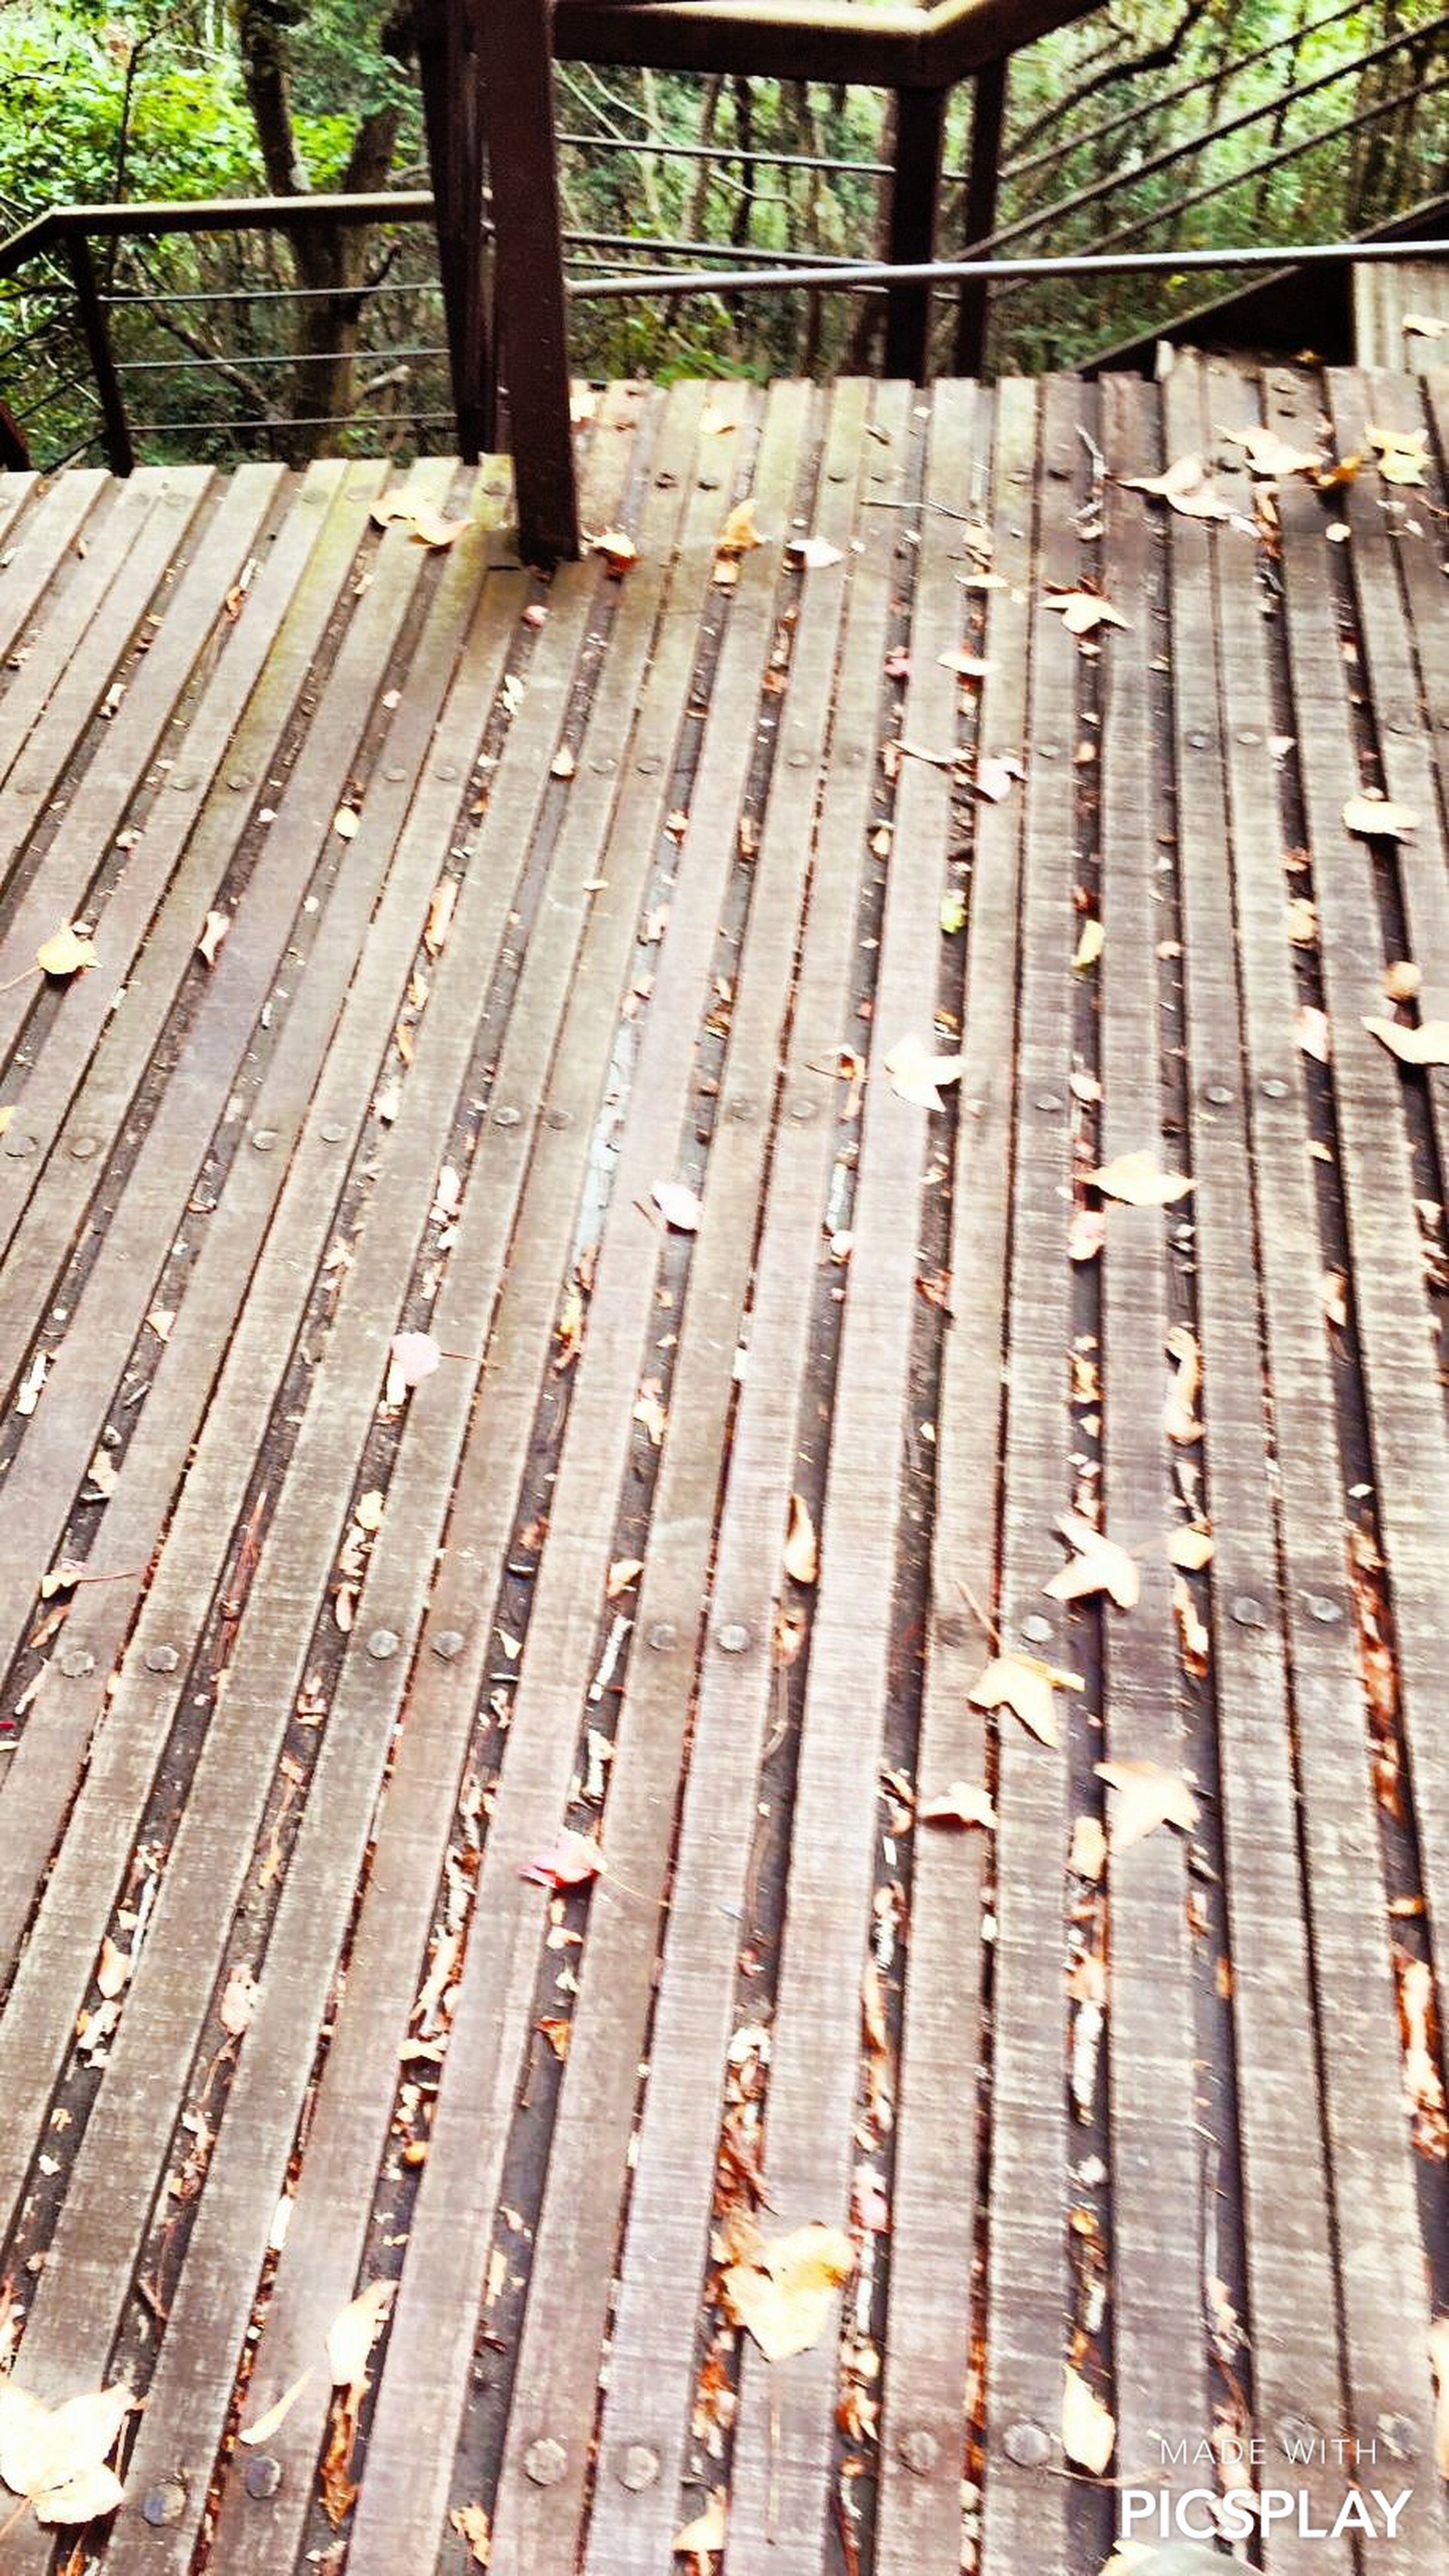 wood - material, wooden, wood, bench, tree, tree trunk, close-up, plank, day, outdoors, old, no people, fence, high angle view, sunlight, park - man made space, metal, pattern, forest, textured